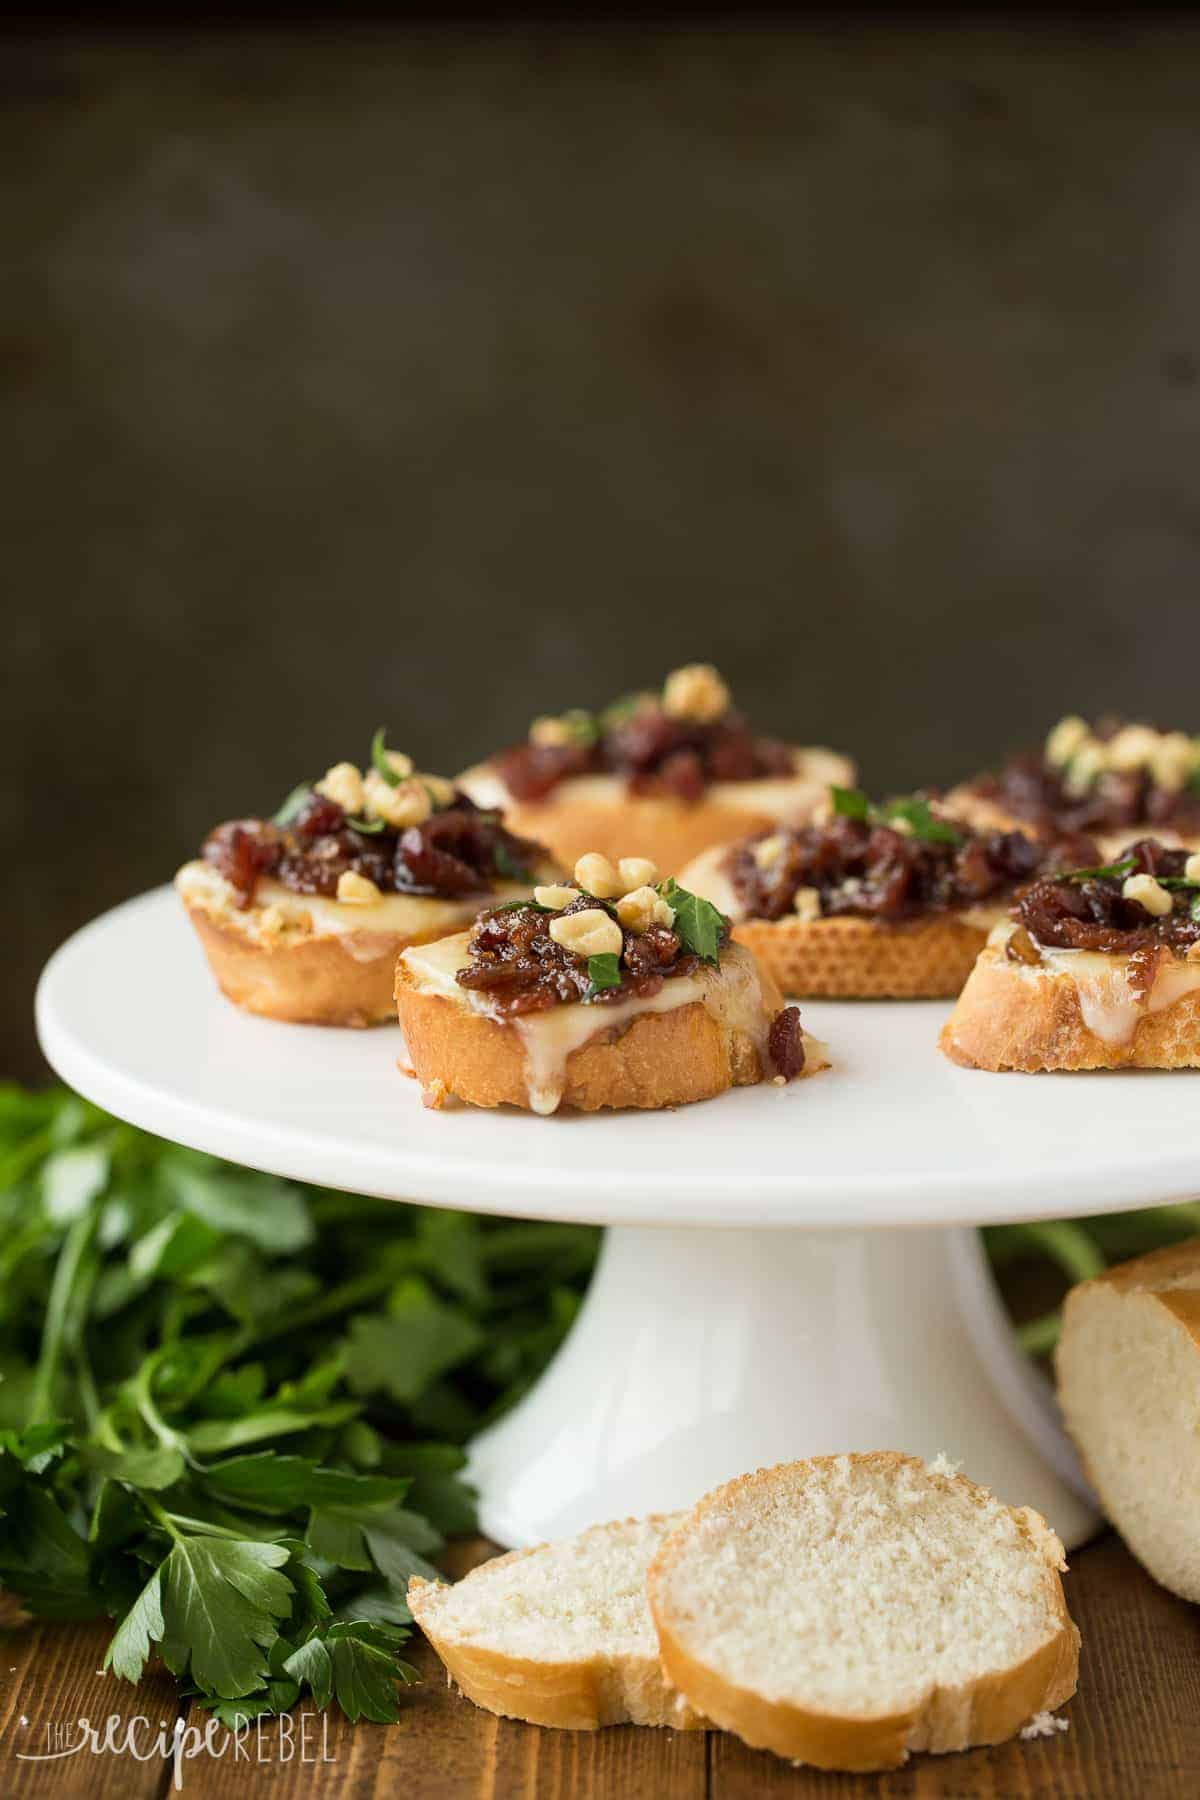 Easy, make ahead Cranberry Bacon Jam and cheese on top of a crusty baguette, topped with chopped walnuts for extra crunch -- these crostini are the perfect combination of sweet, smoky, salty and cheesy!